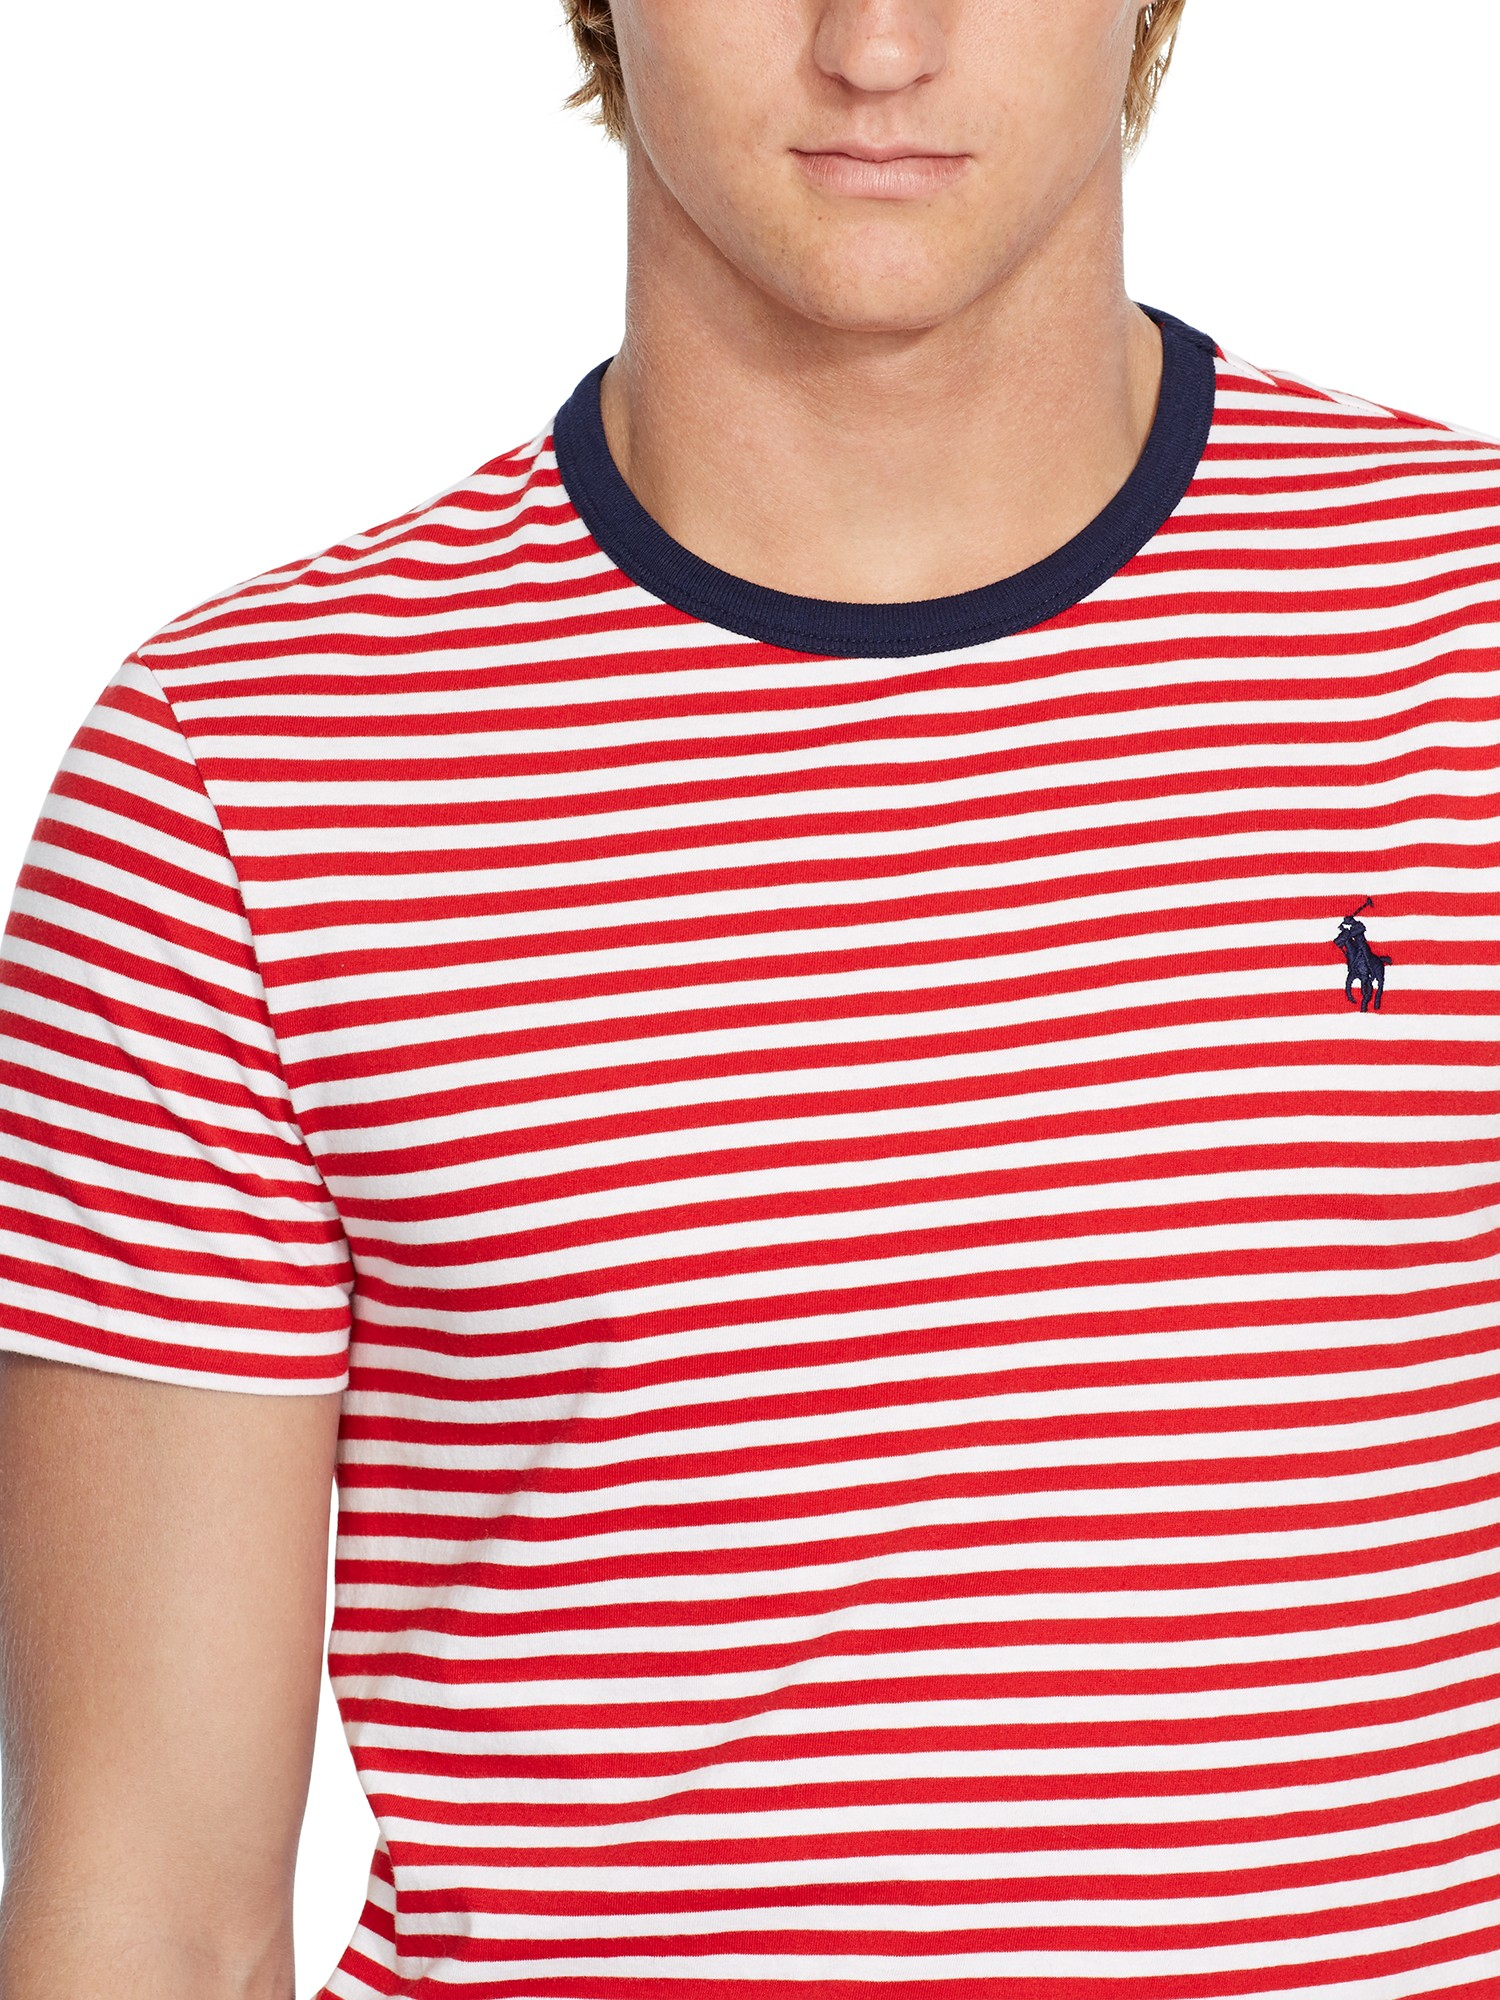 Lyst polo ralph lauren custom fit stripe t shirt in red for Red white striped polo shirt